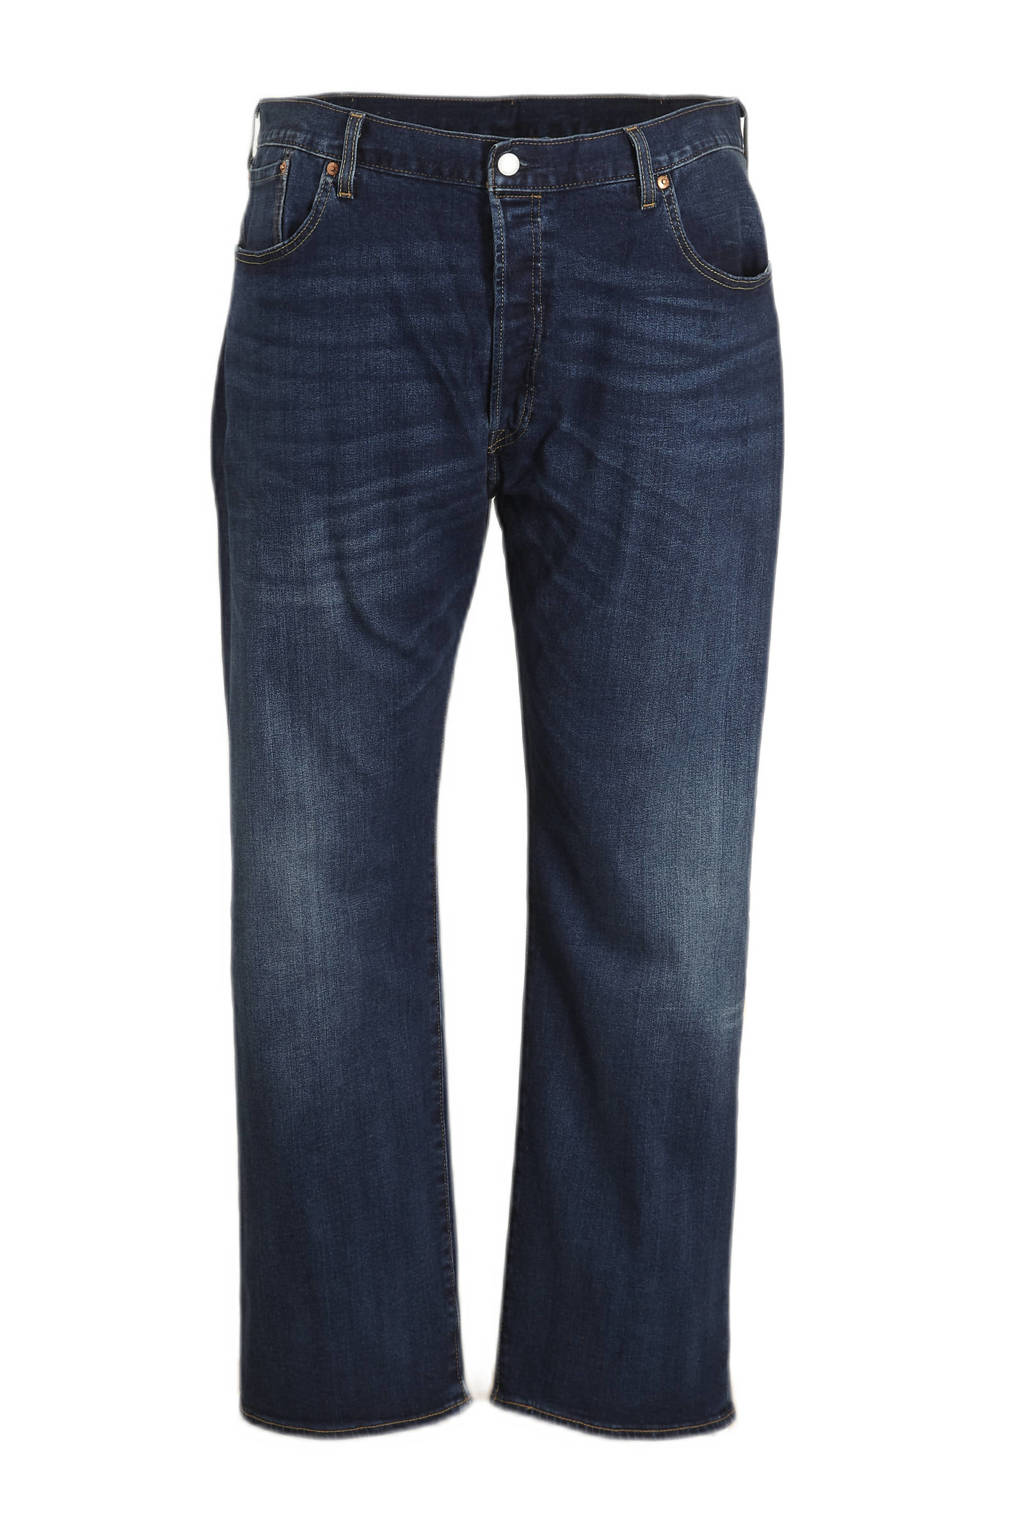 Levi's Big and Tall regular fit jeans 501 Plus Size do the rump, DO THE RUMP